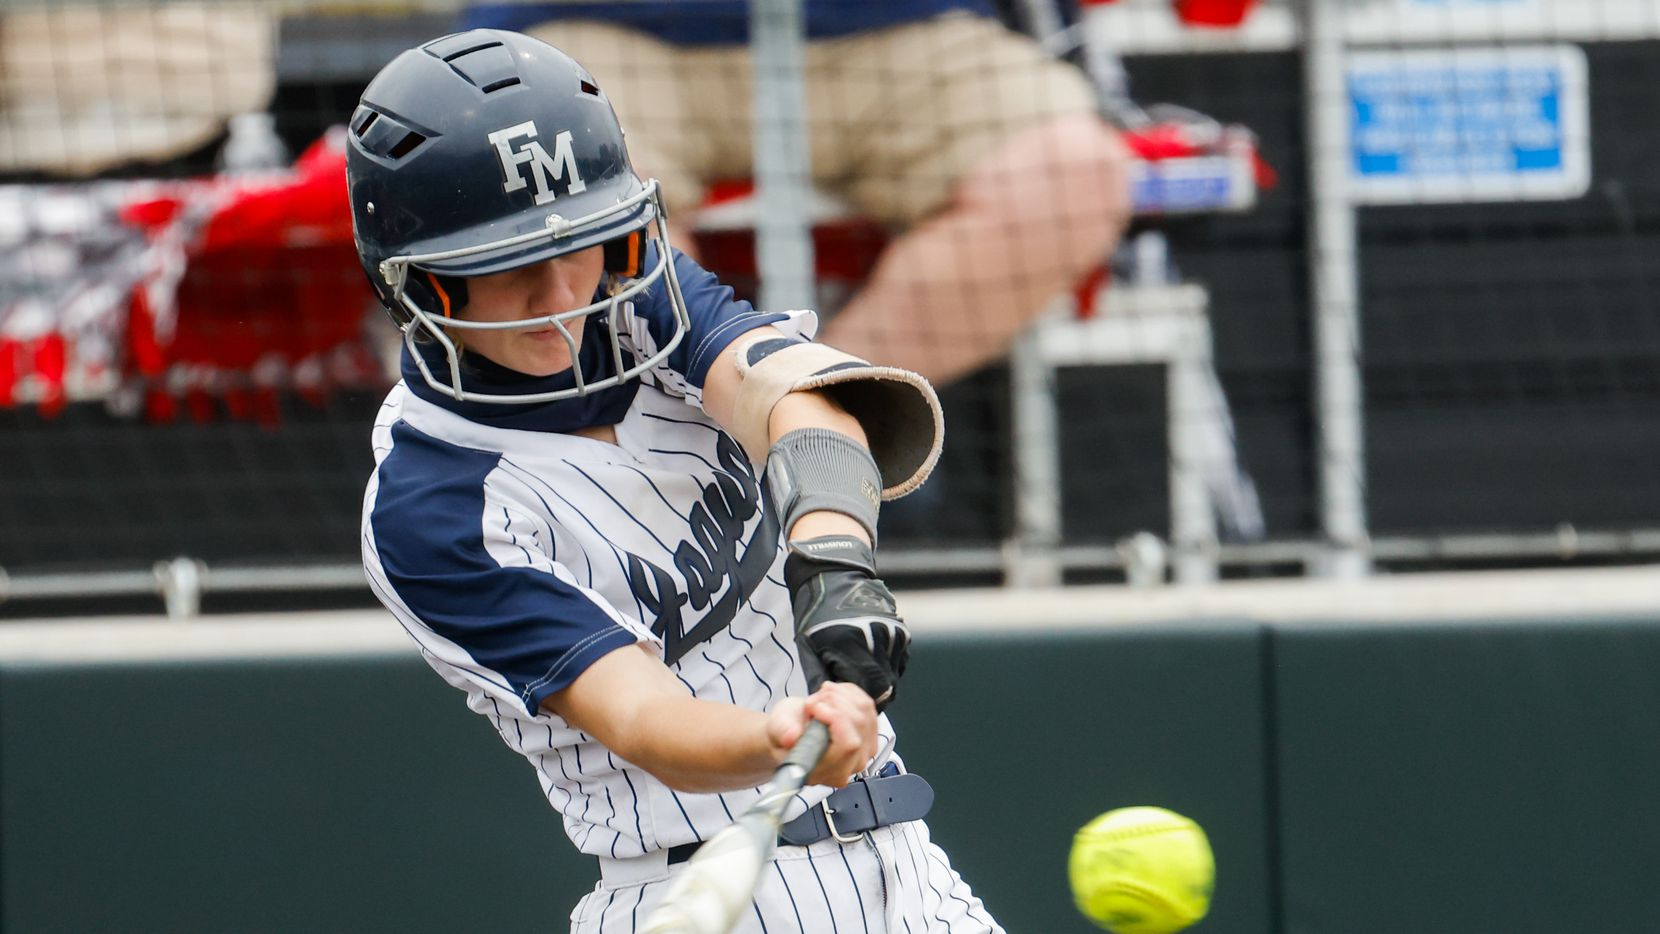 Flower Mound's McKenna Andrews (6) hits the ball against McKinney Boyd during the sixth inning of a Class 6A bi-district playoff game on Friday, April 30, 2021, in Denton. (Juan Figueroa/The Dallas Morning News)